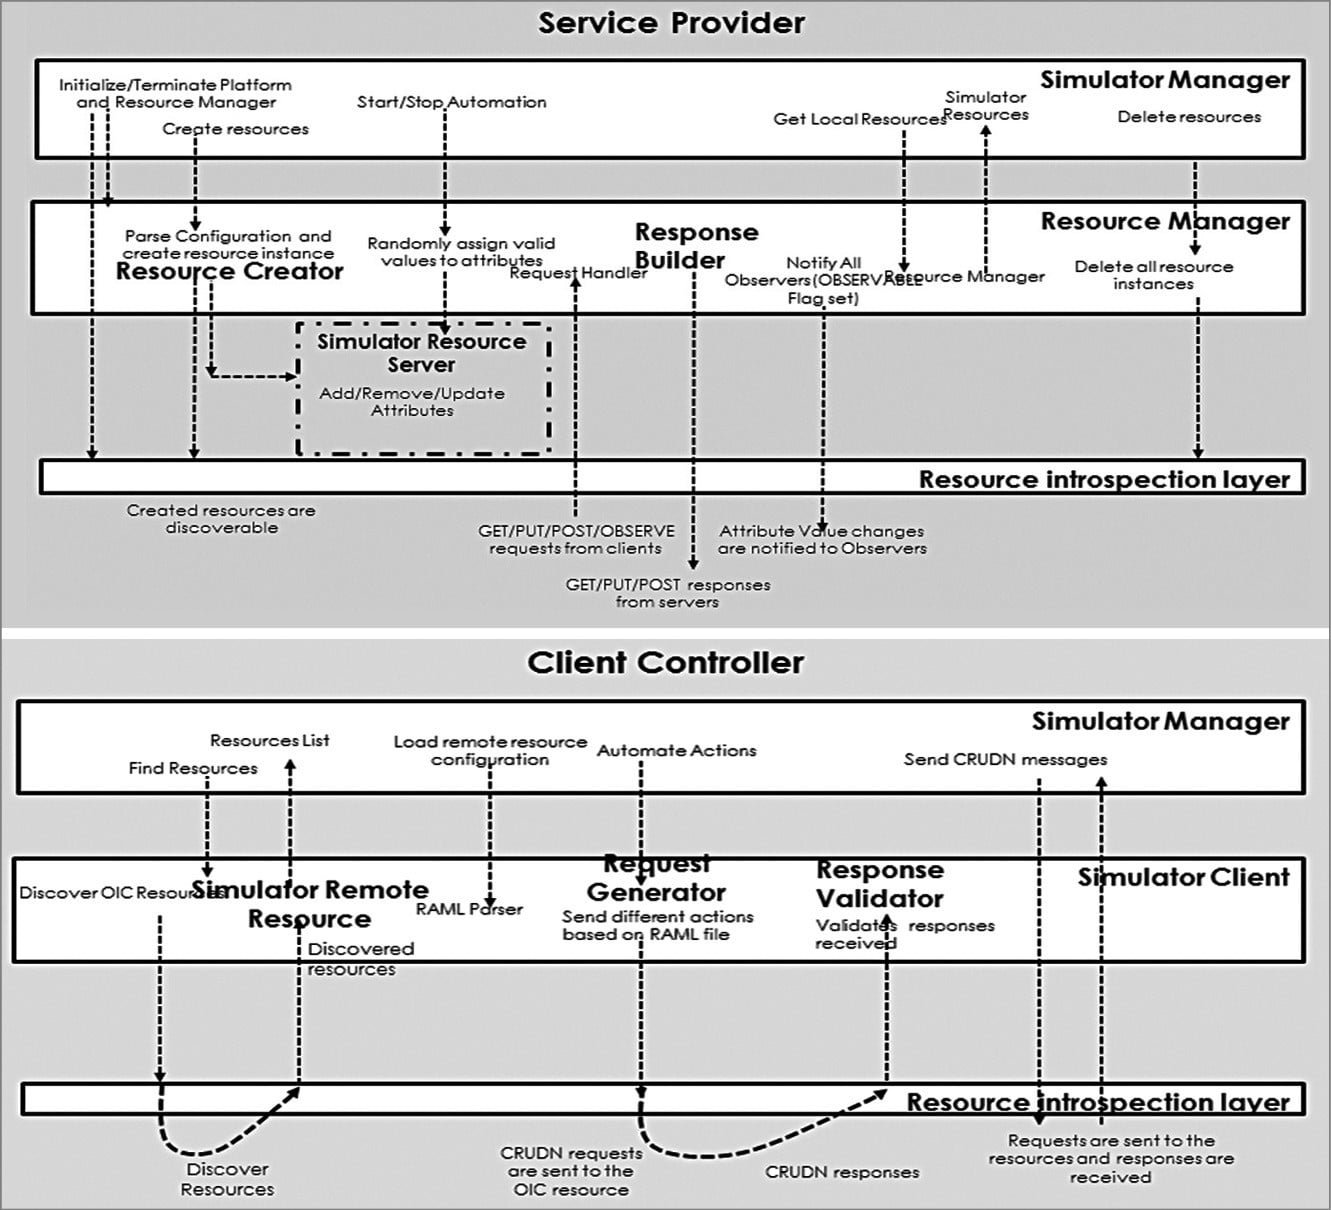 Block diagram of service provider and client controller perspectives (Image courtesy: https://wiki.iotivity.org/iotivity_simulator)